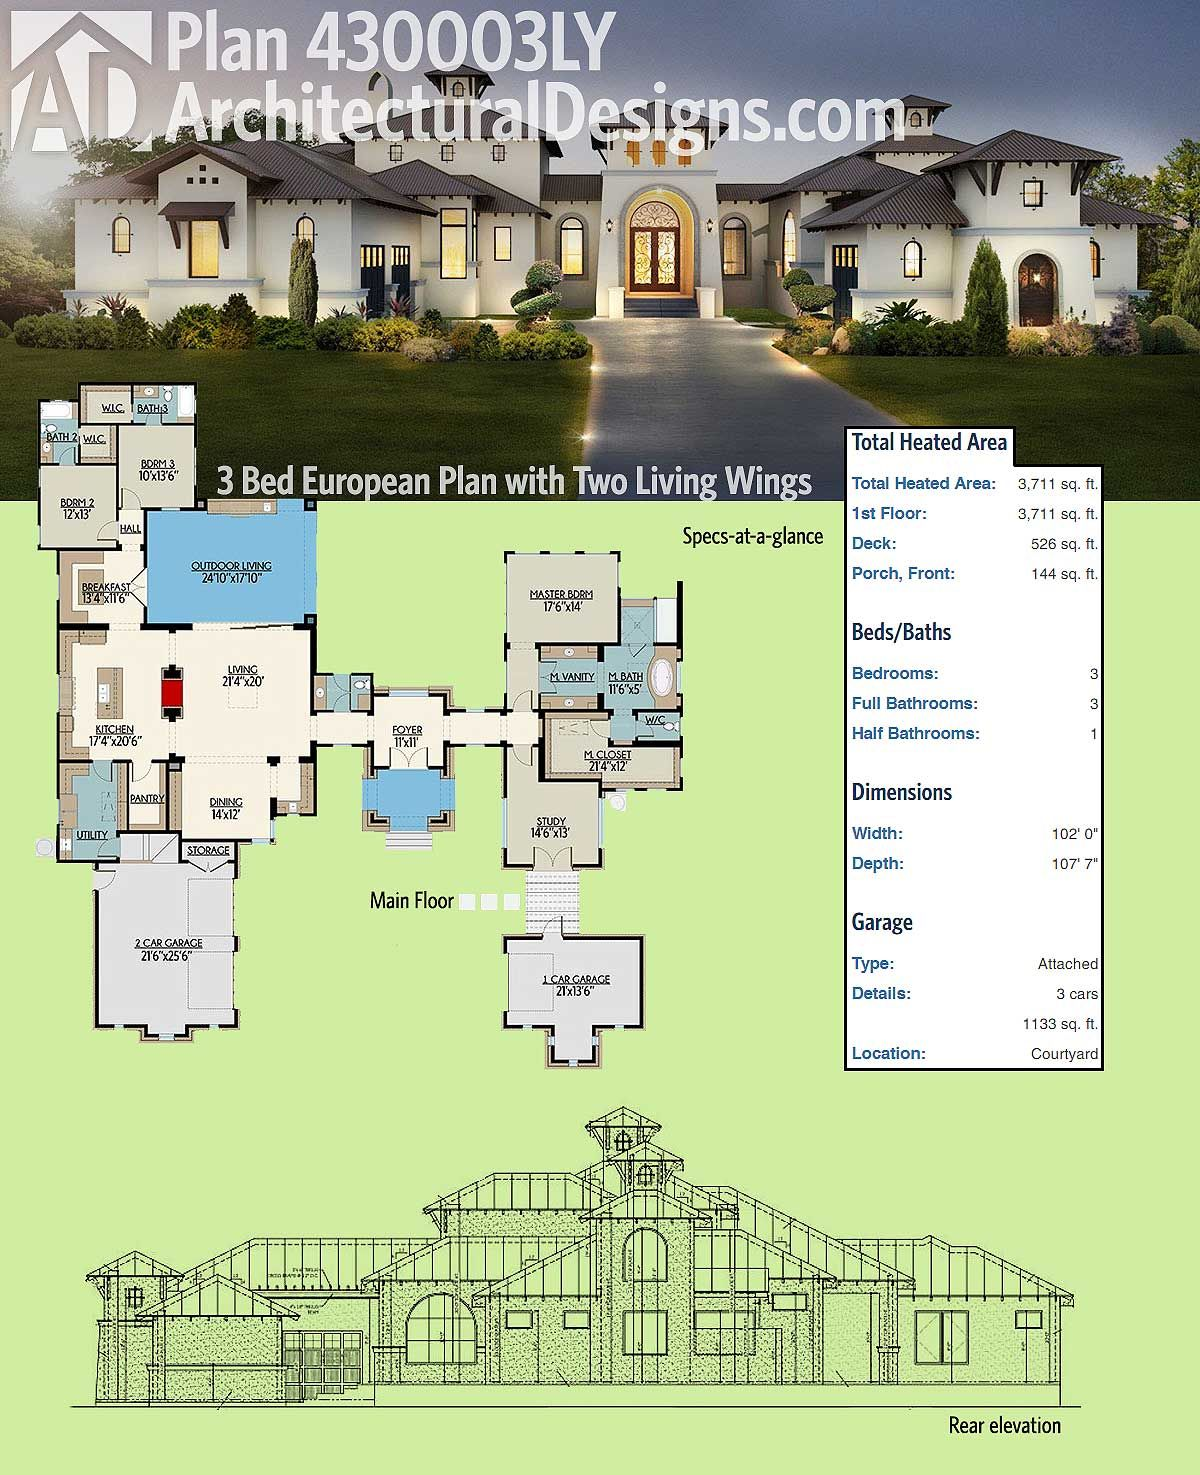 Plan 430003ly 3 Bed Hill Country House Plan With Two Living Wings House Plans Luxury House Plans Country House Plan